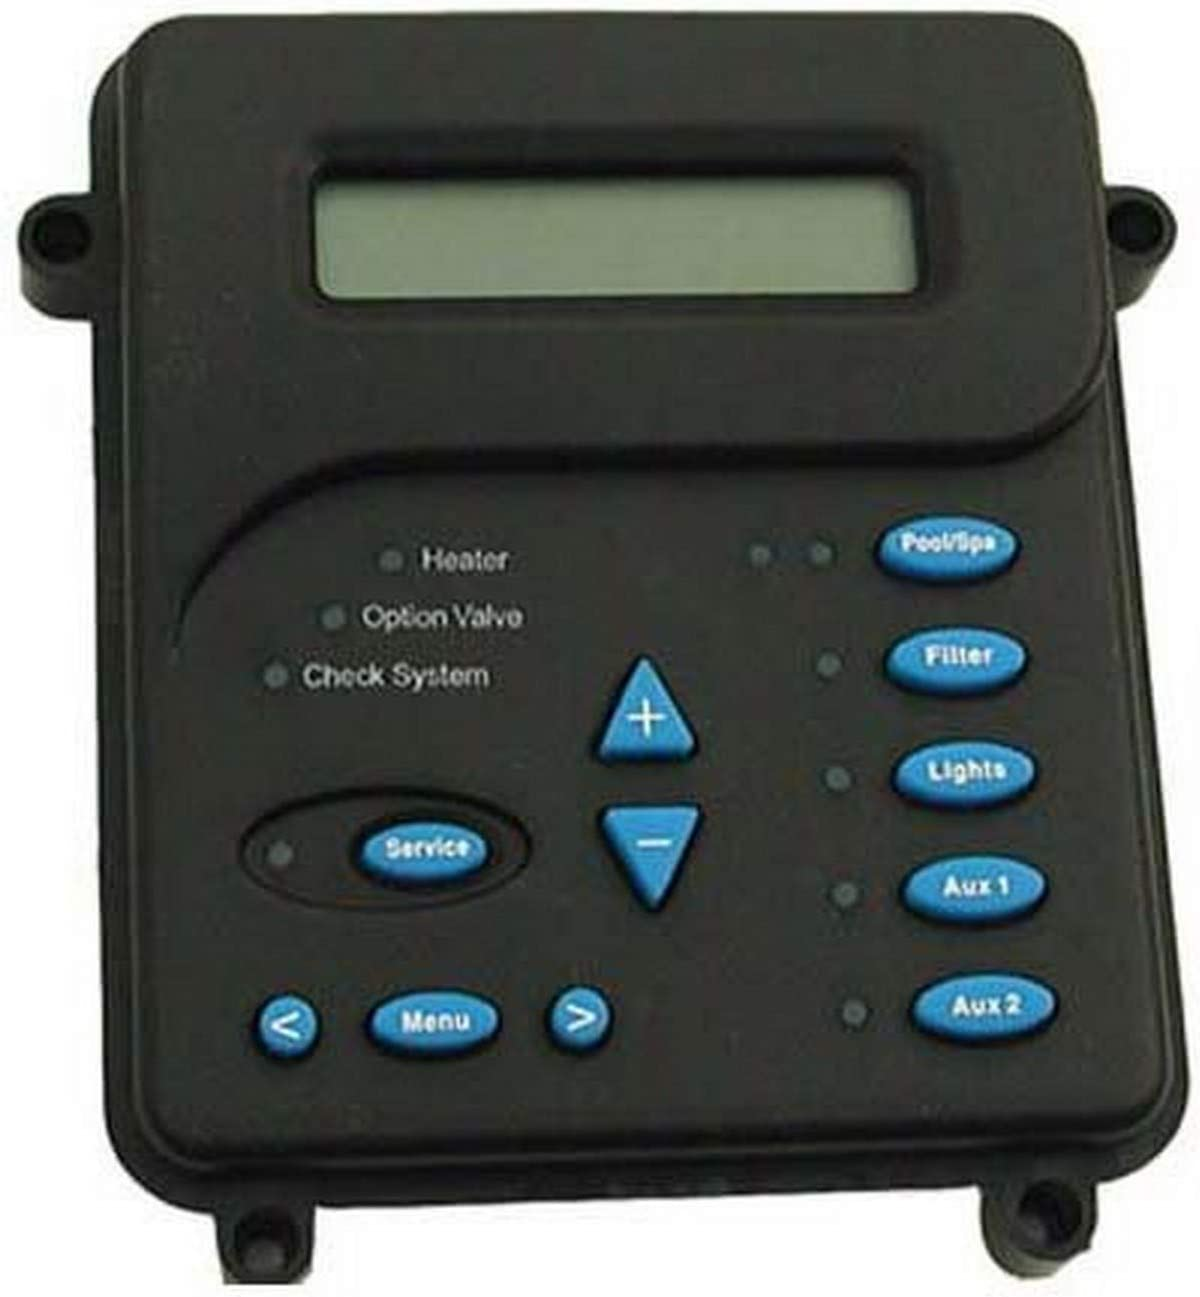 Hayward GLX-LOCAL-P-4 Local Display Replacement for Hayward PL-P-4 Goldline Aqua Logic Automation and Chlorination